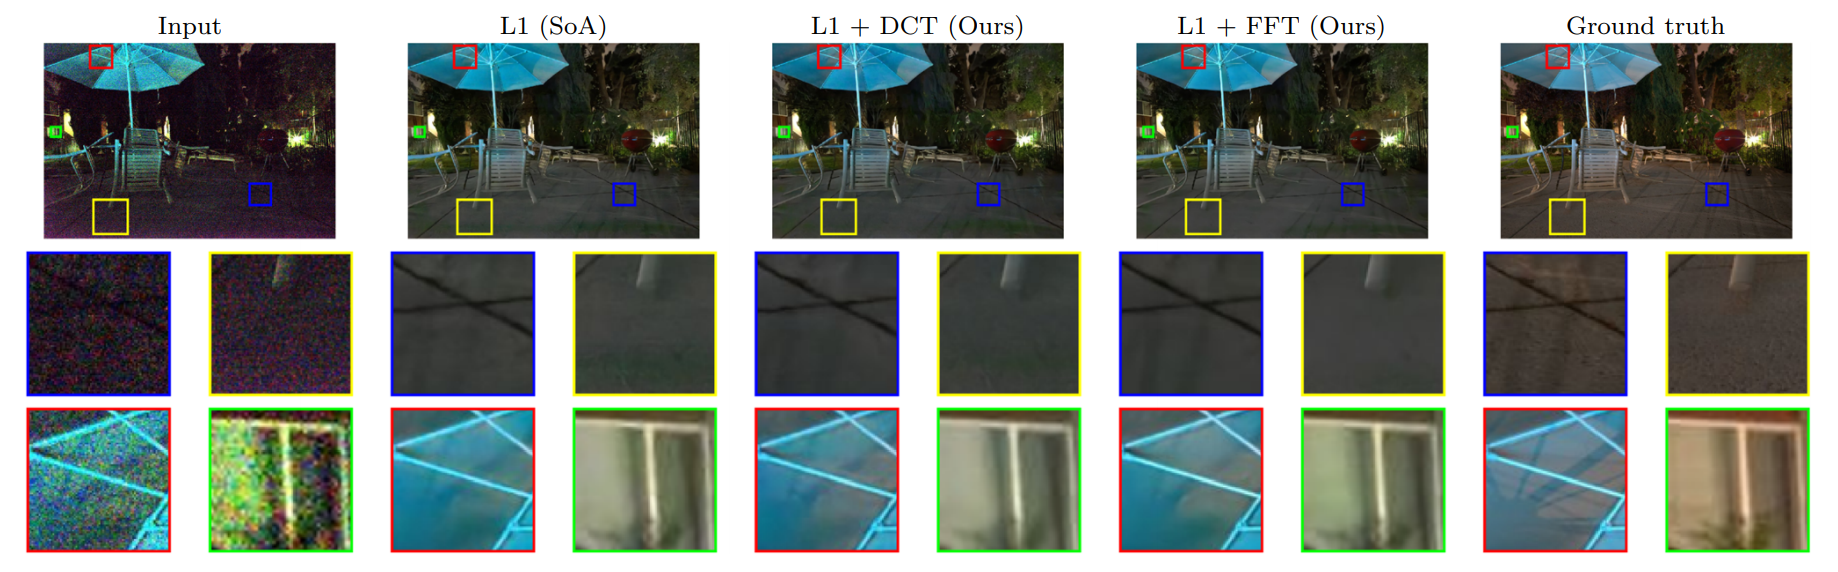 Frequency-domain loss function for deep exposure correction of dark images